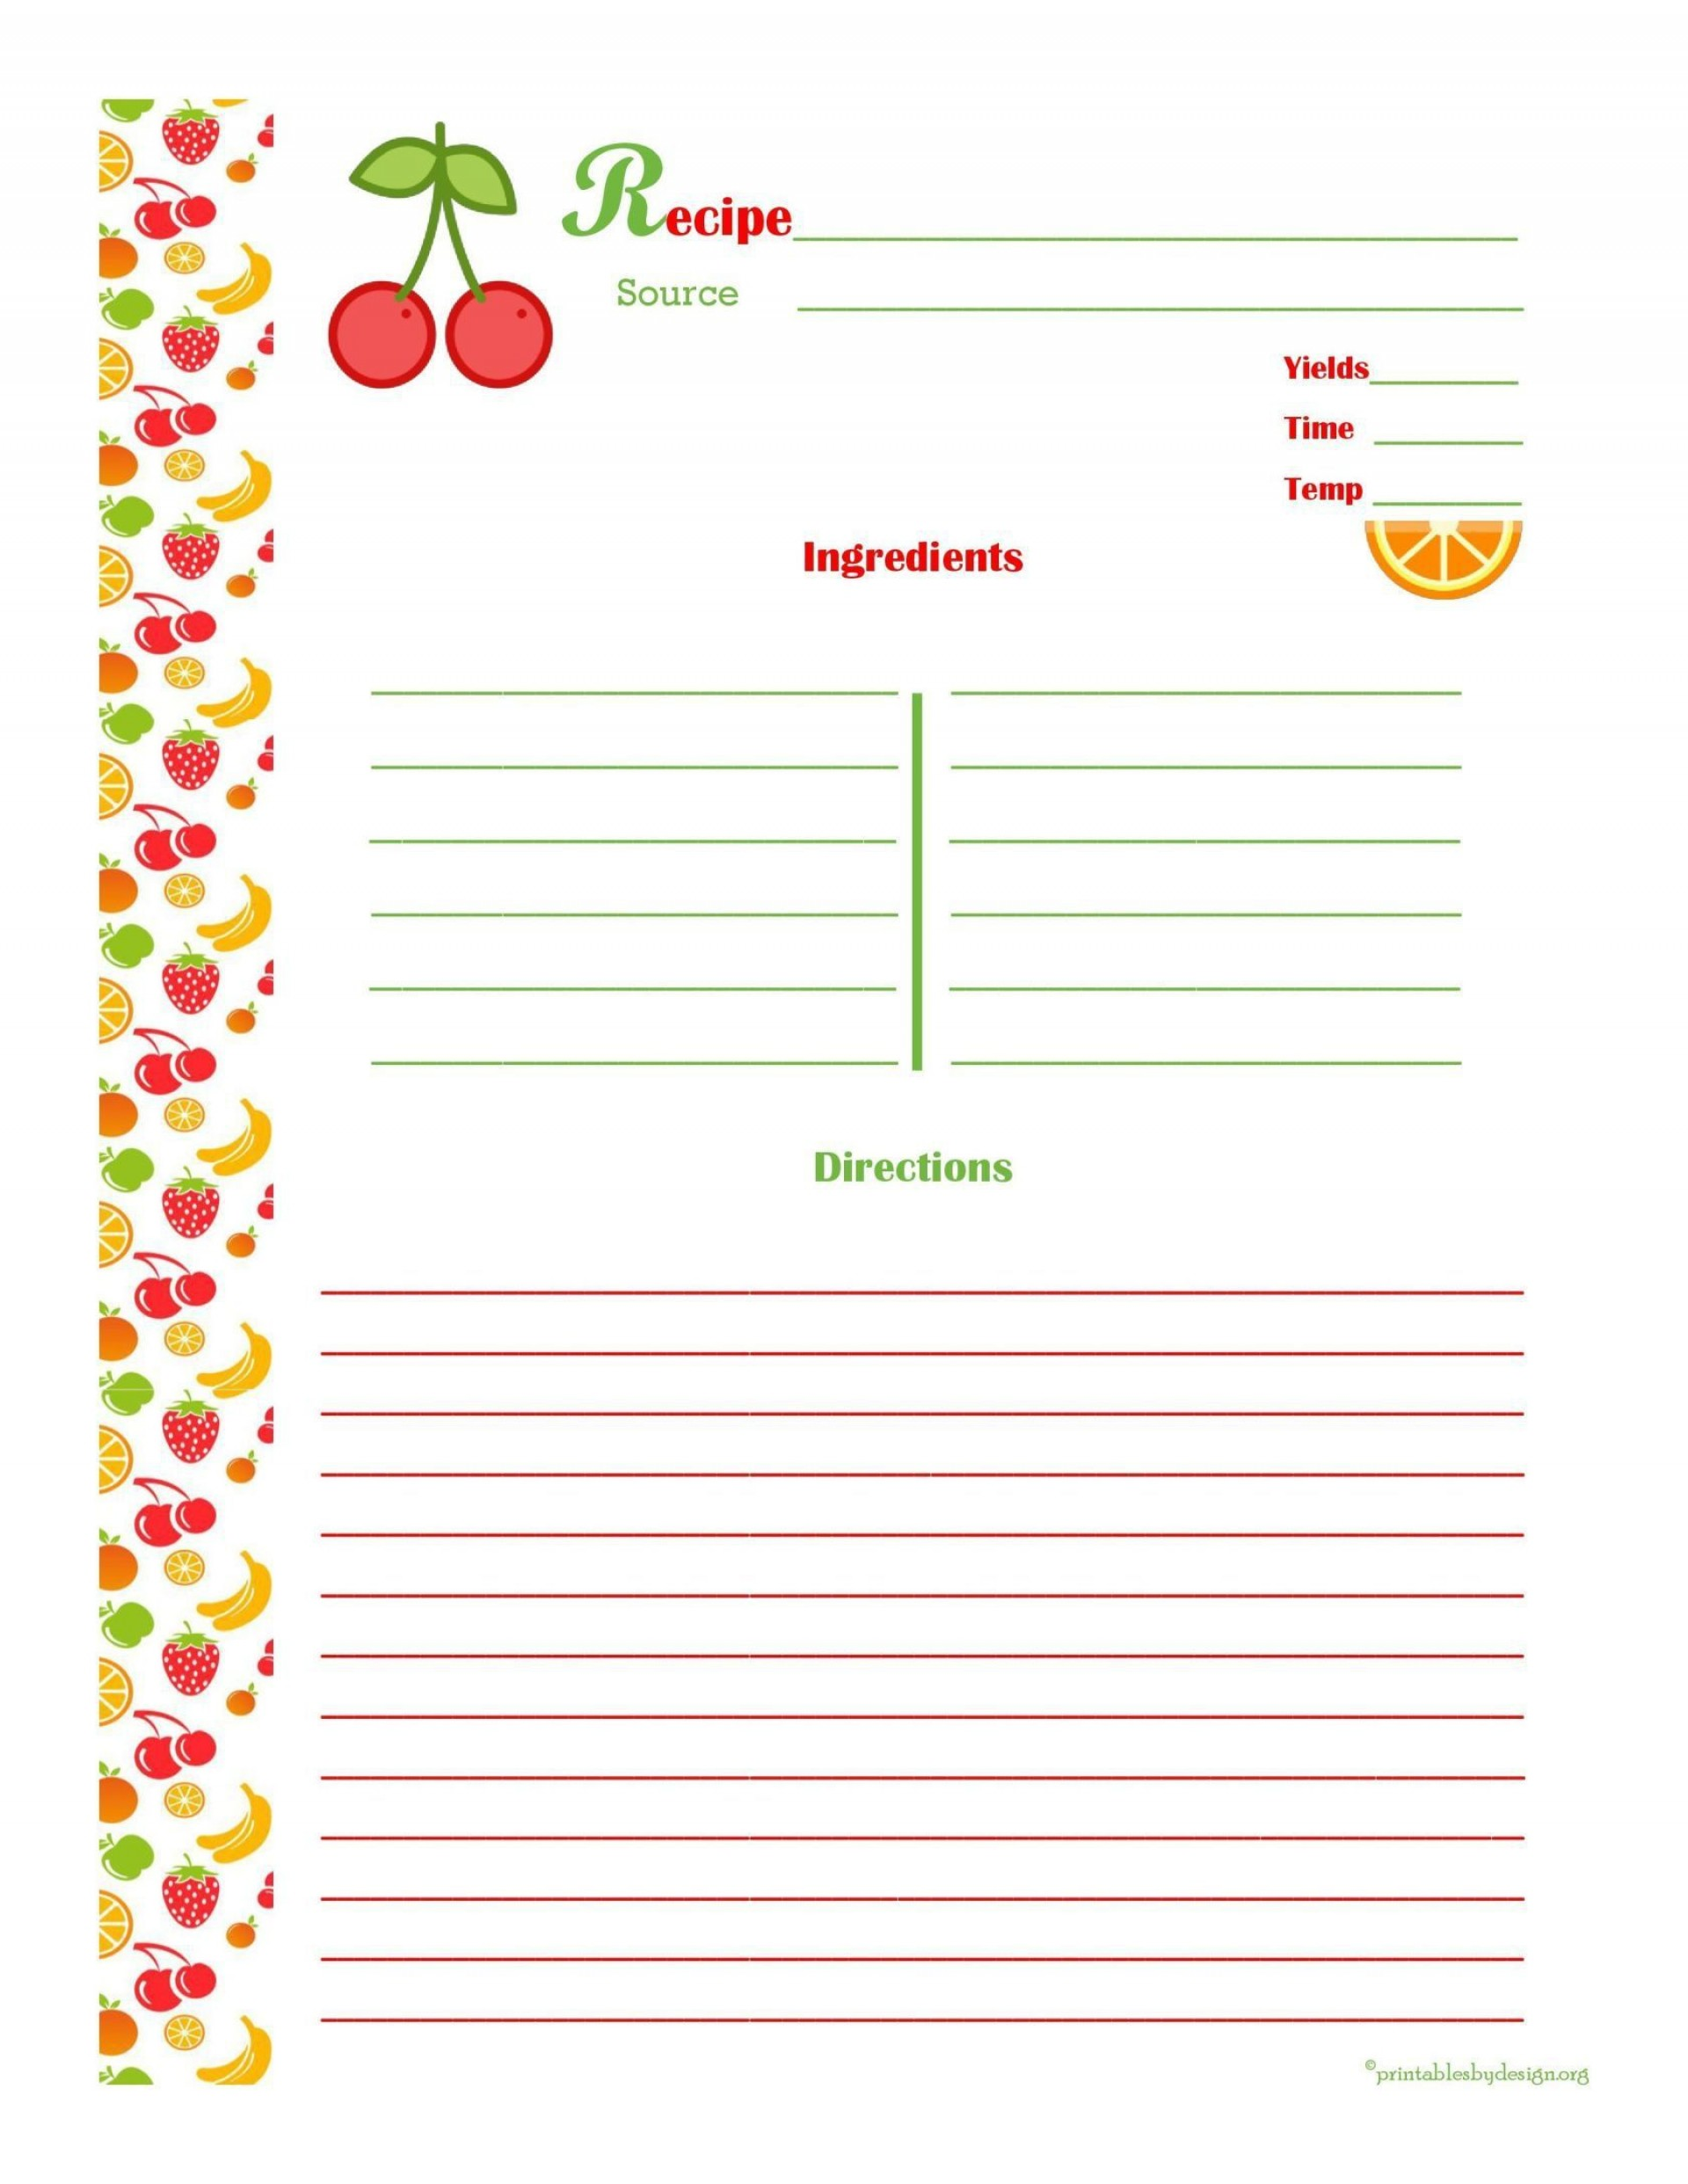 002 Formidable M Word Recipe Template Photo  Microsoft Card 2010 Full Page1920